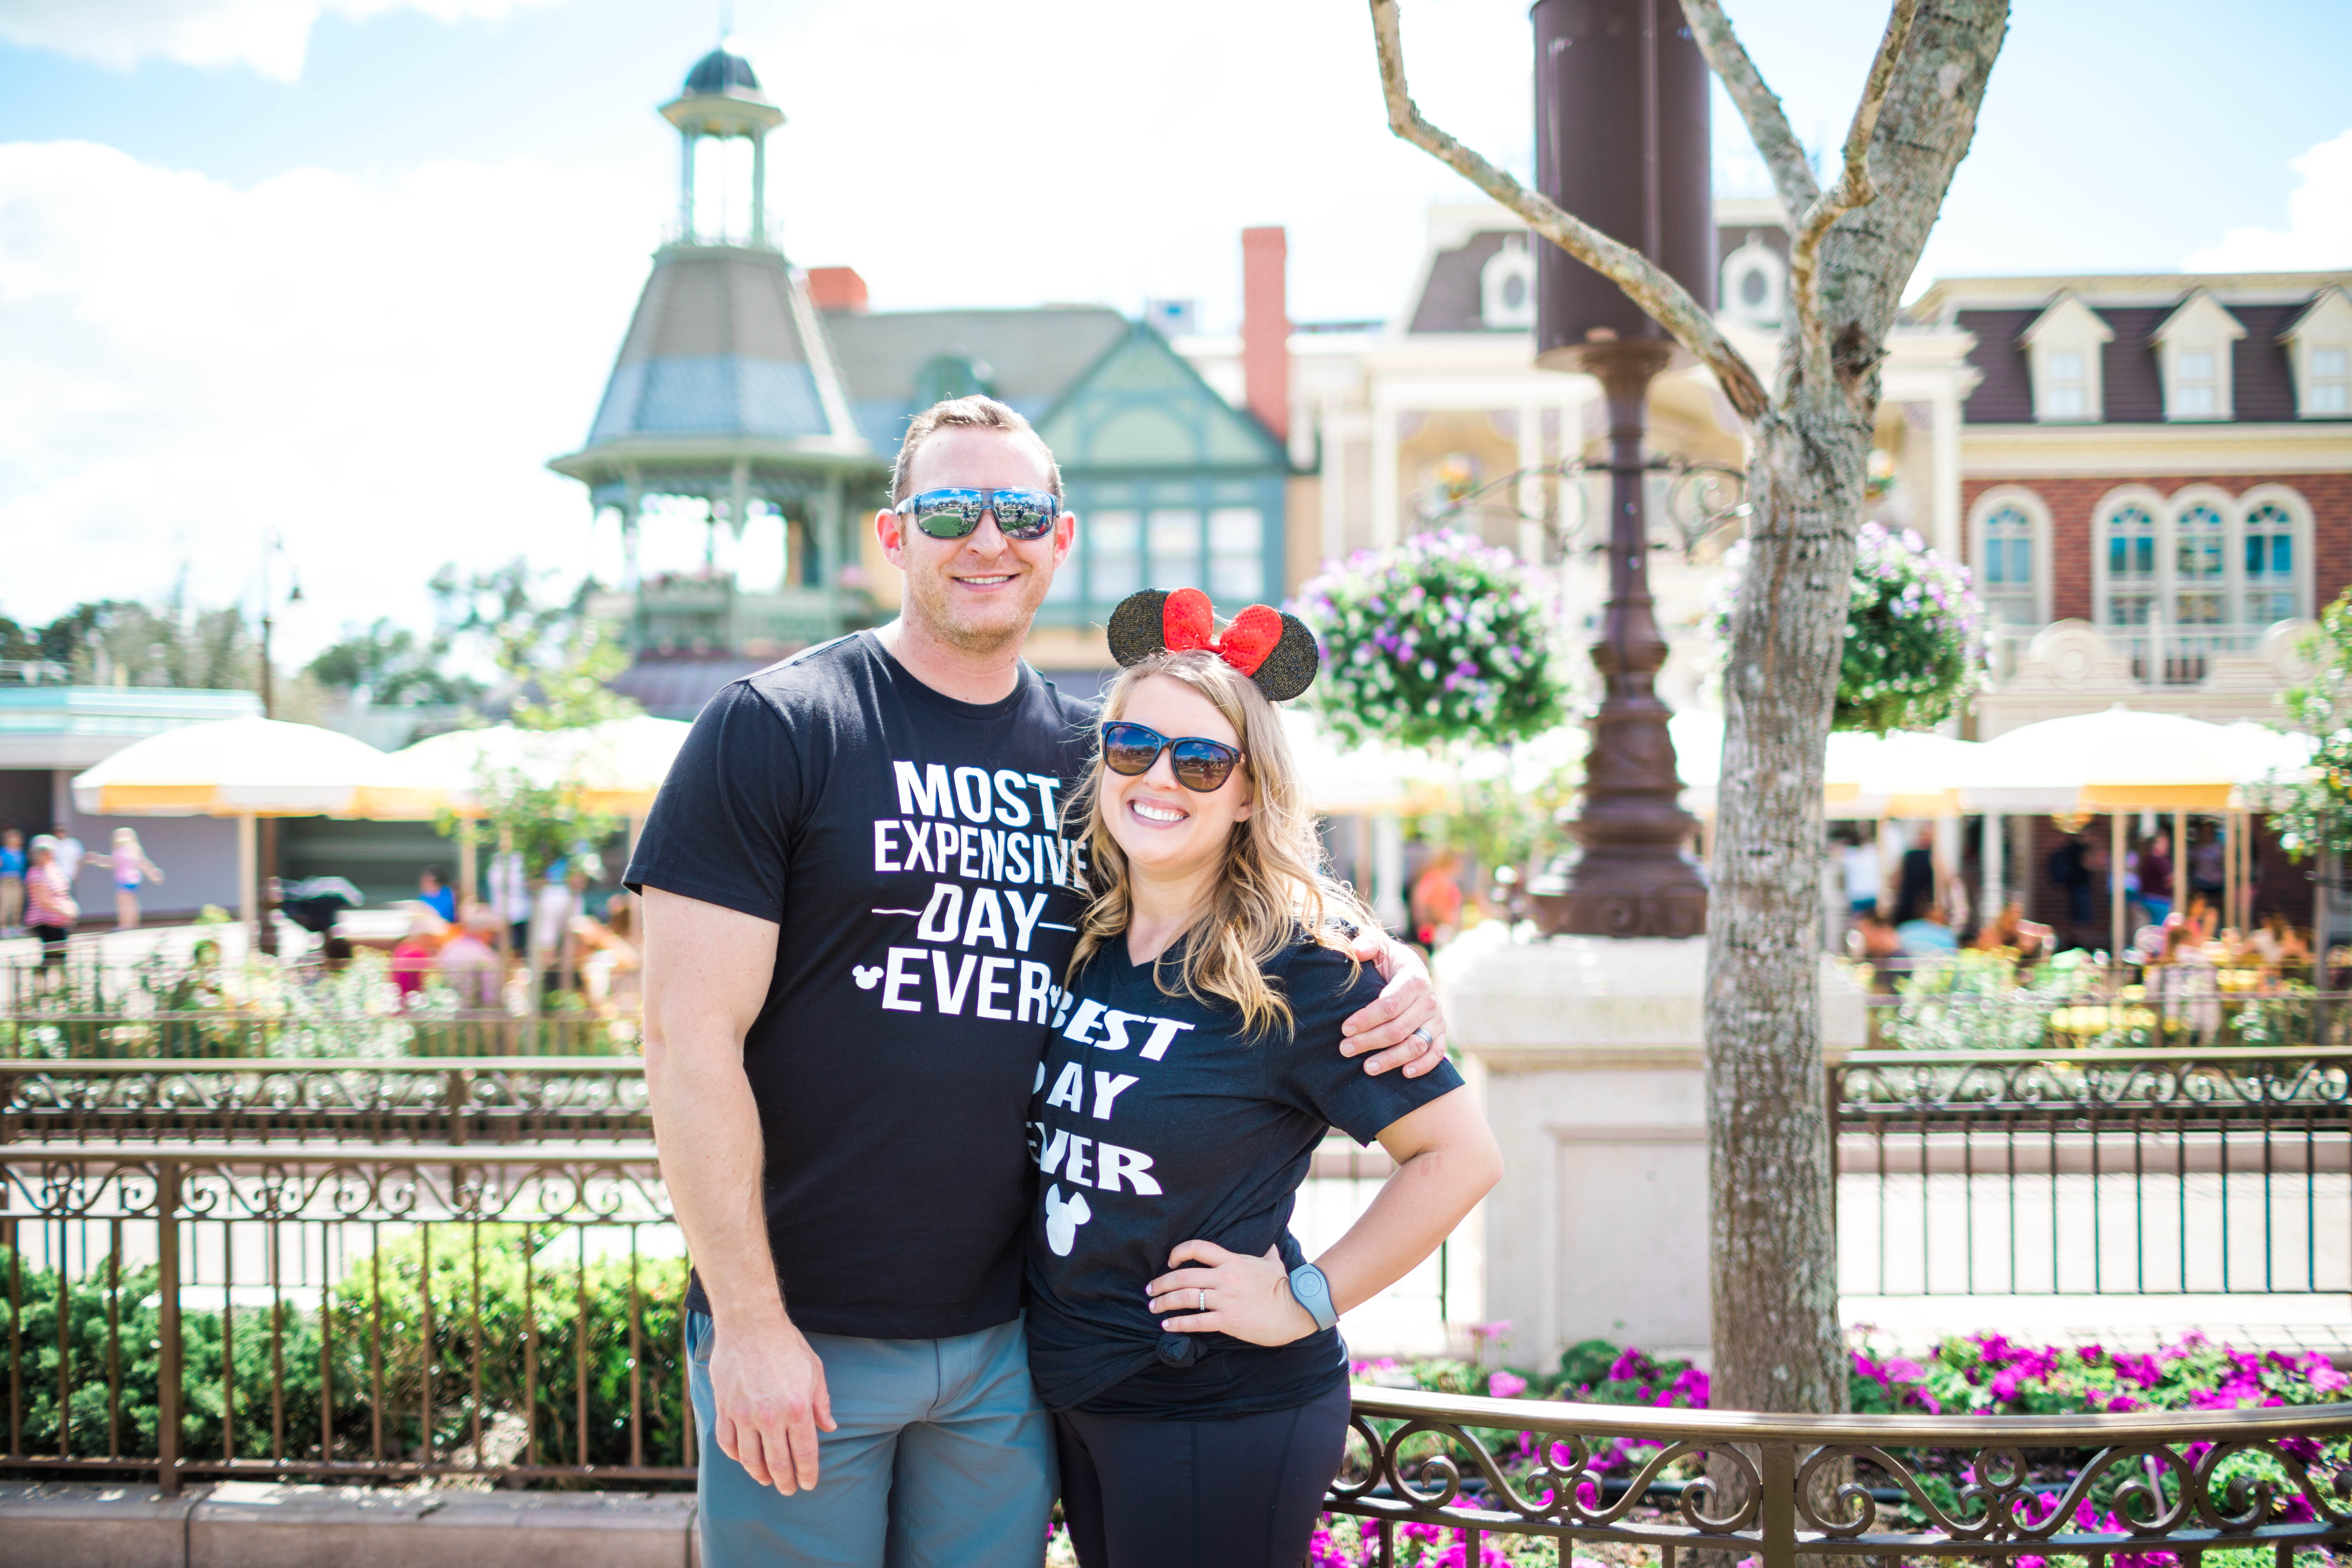 Picture of me and my husband at Disney World